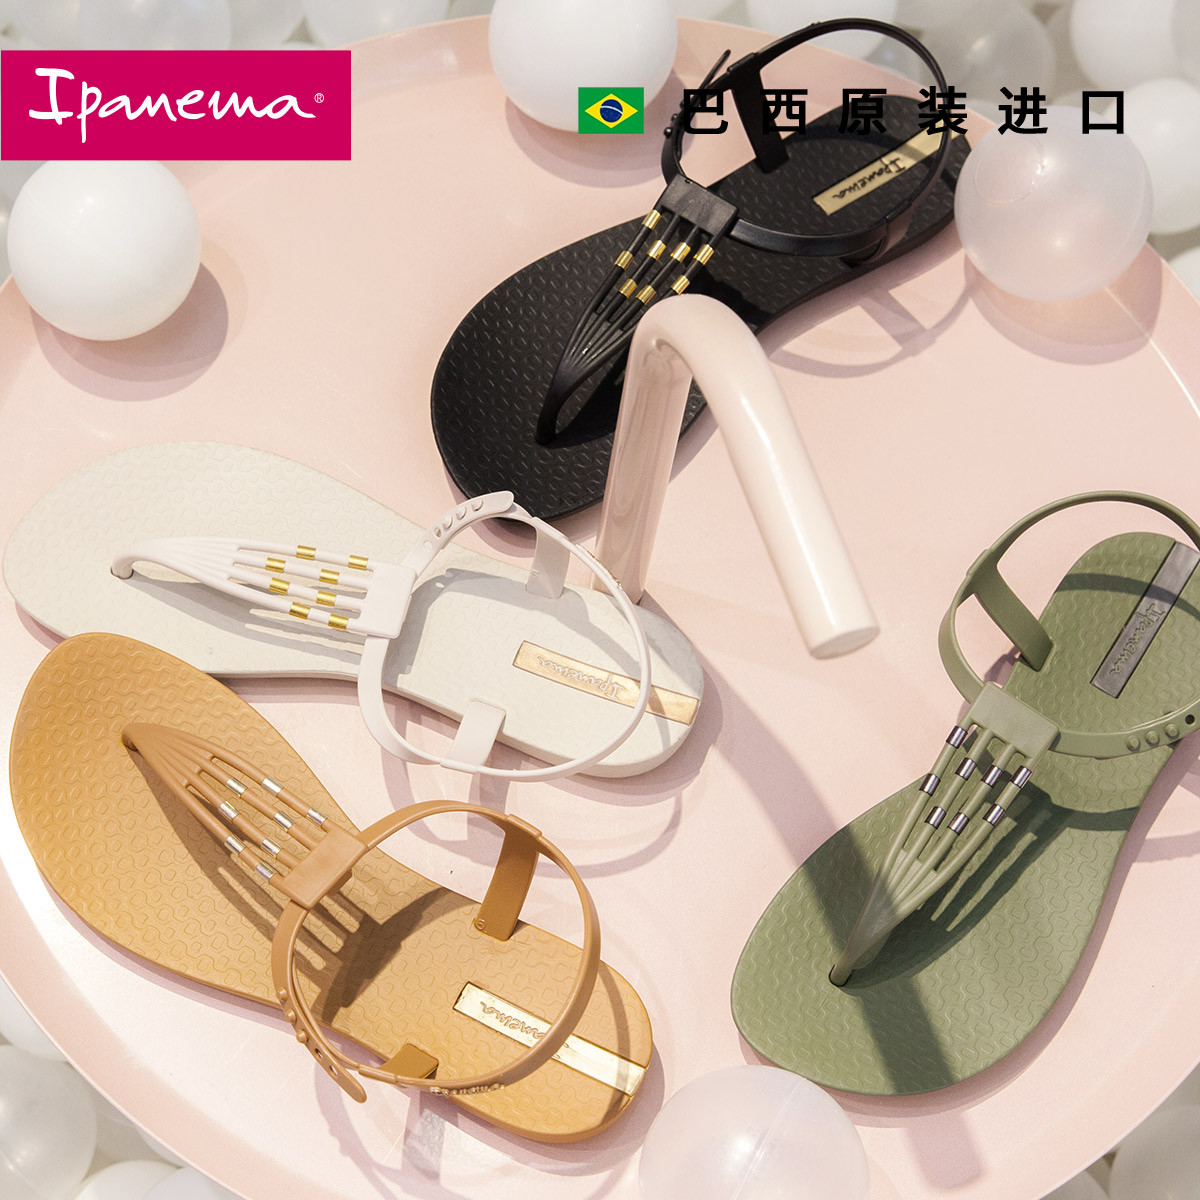 Ipanema Sandals Female Summer Fashion Shoes New Roman Shoes Flat Bottom Beach Shoes Student Fairy Style